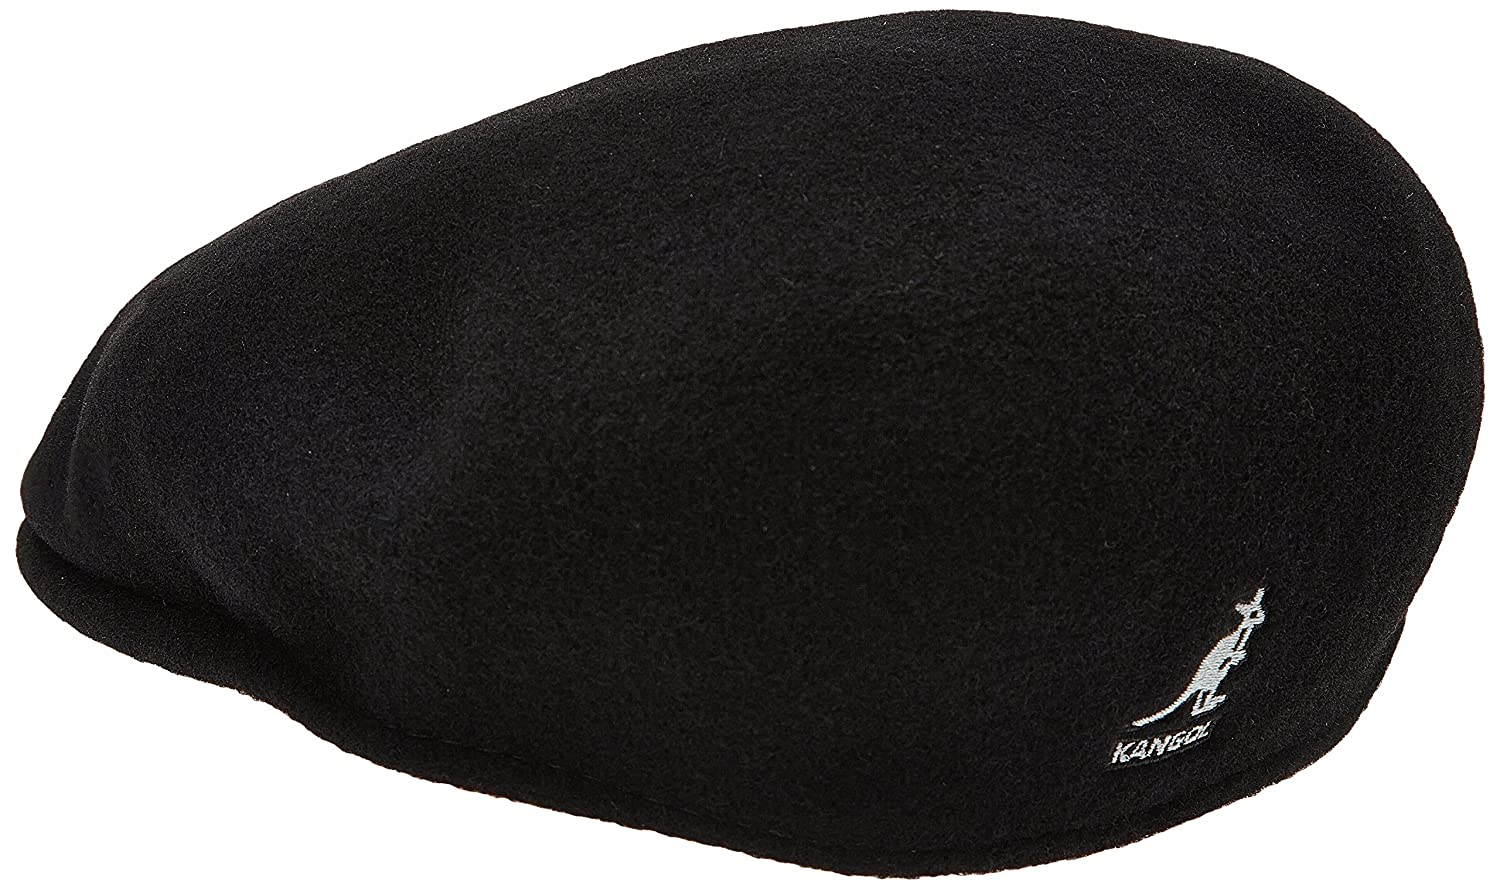 f1e855fb5f7 Kangol Men s 504 Cap at Amazon Men s Clothing store